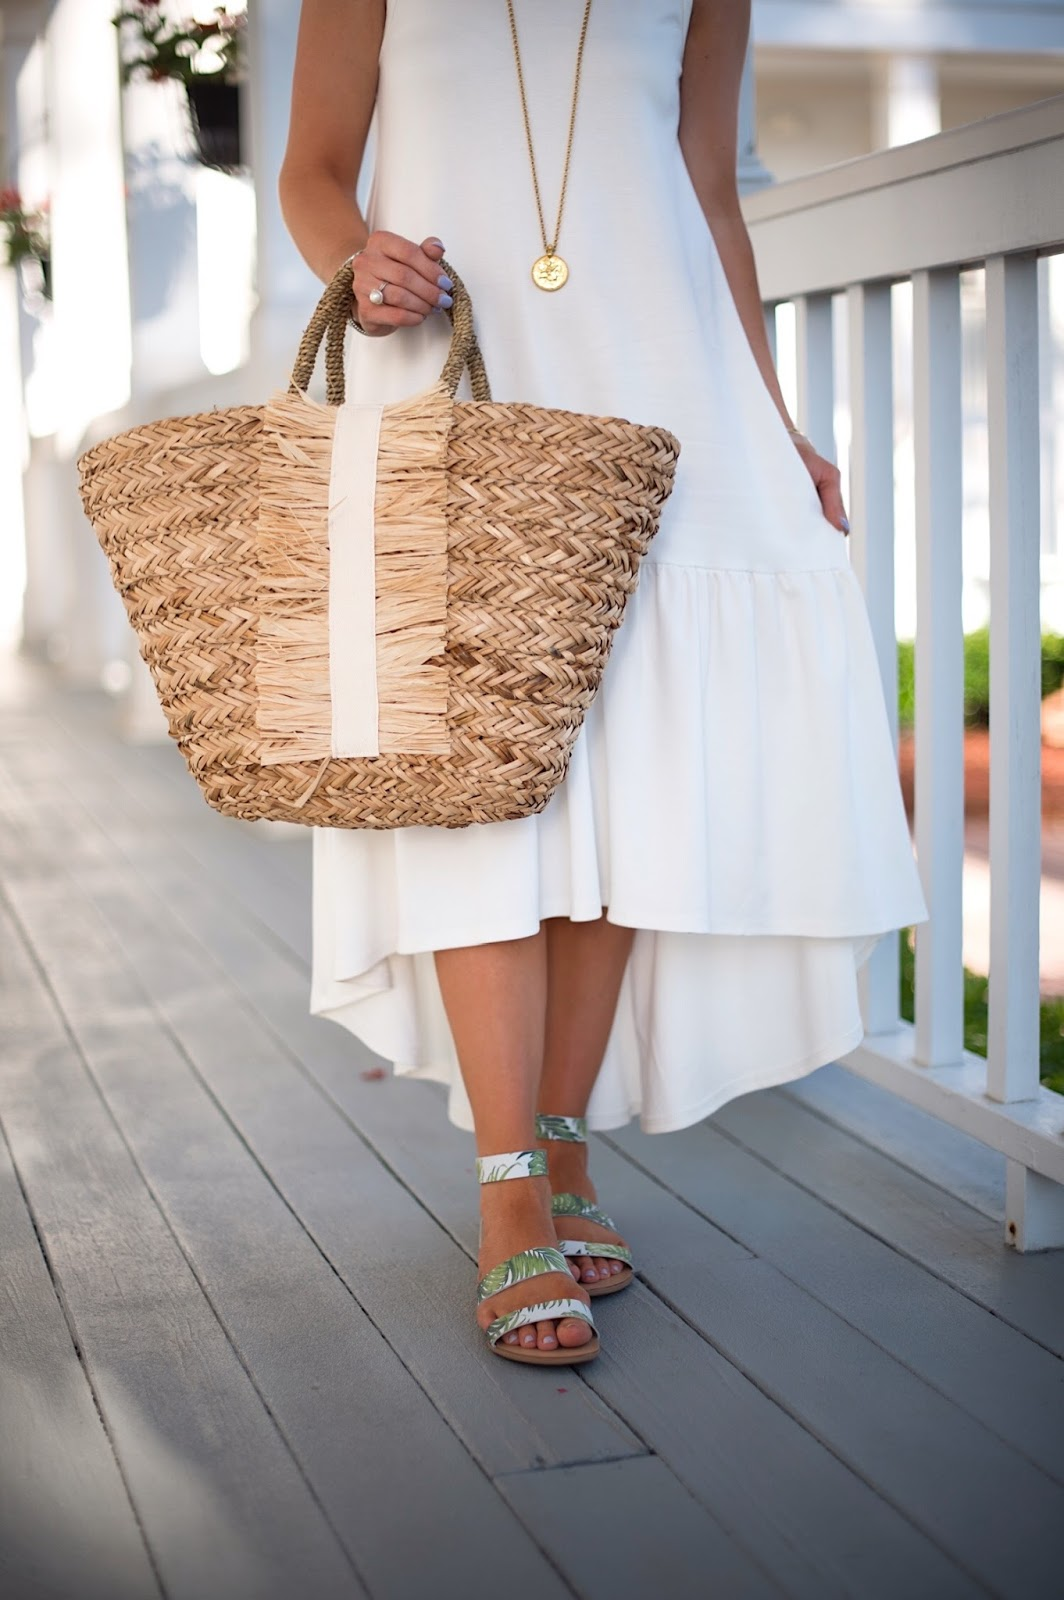 Hat Attack straw tote - Click through to see more on Something Delightful Blog!